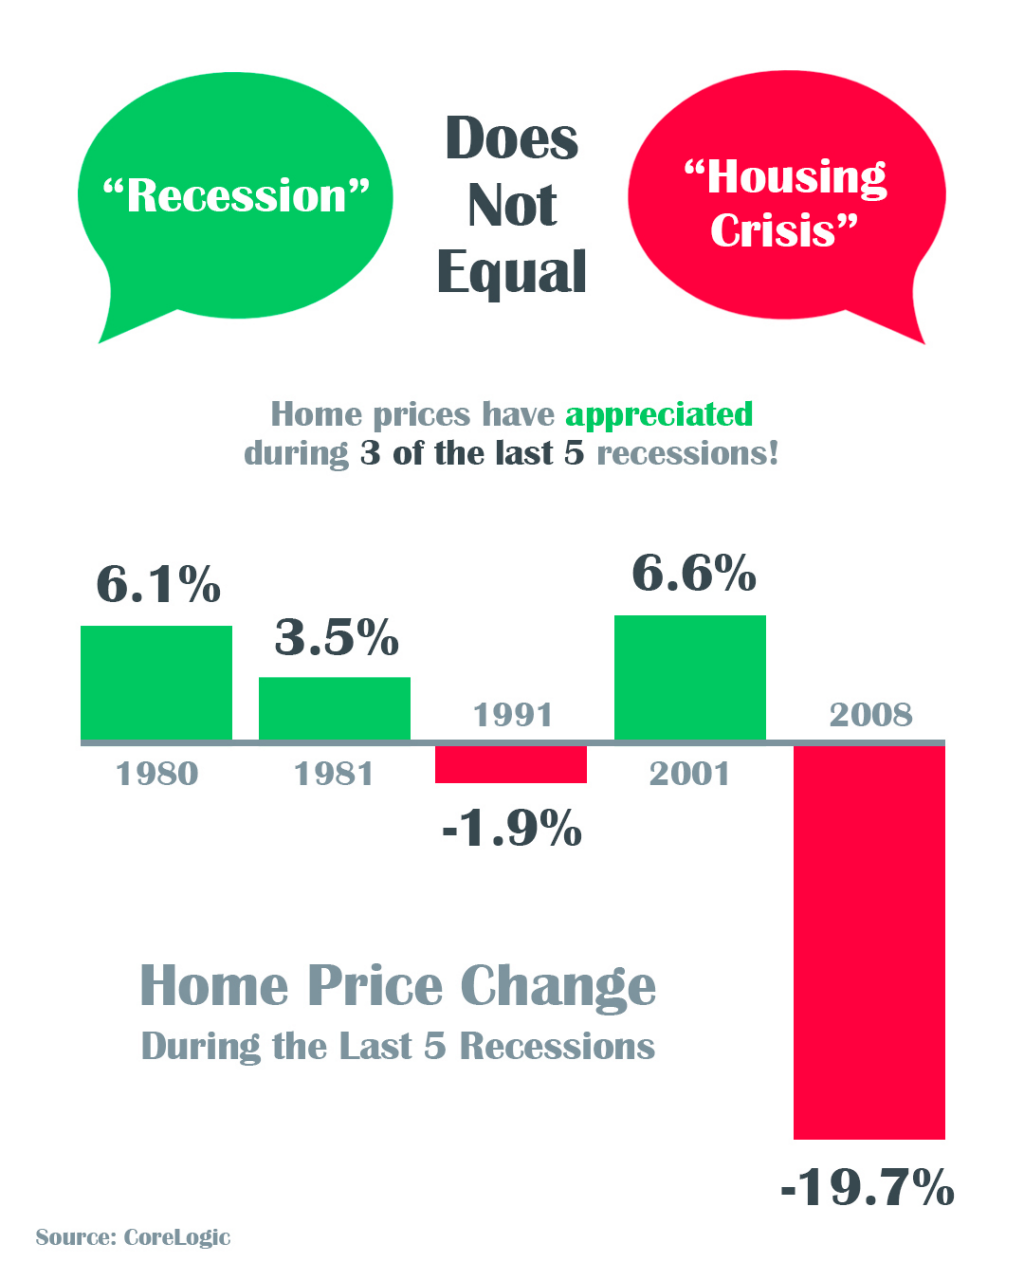 Recession does not Equal Housing Crisis